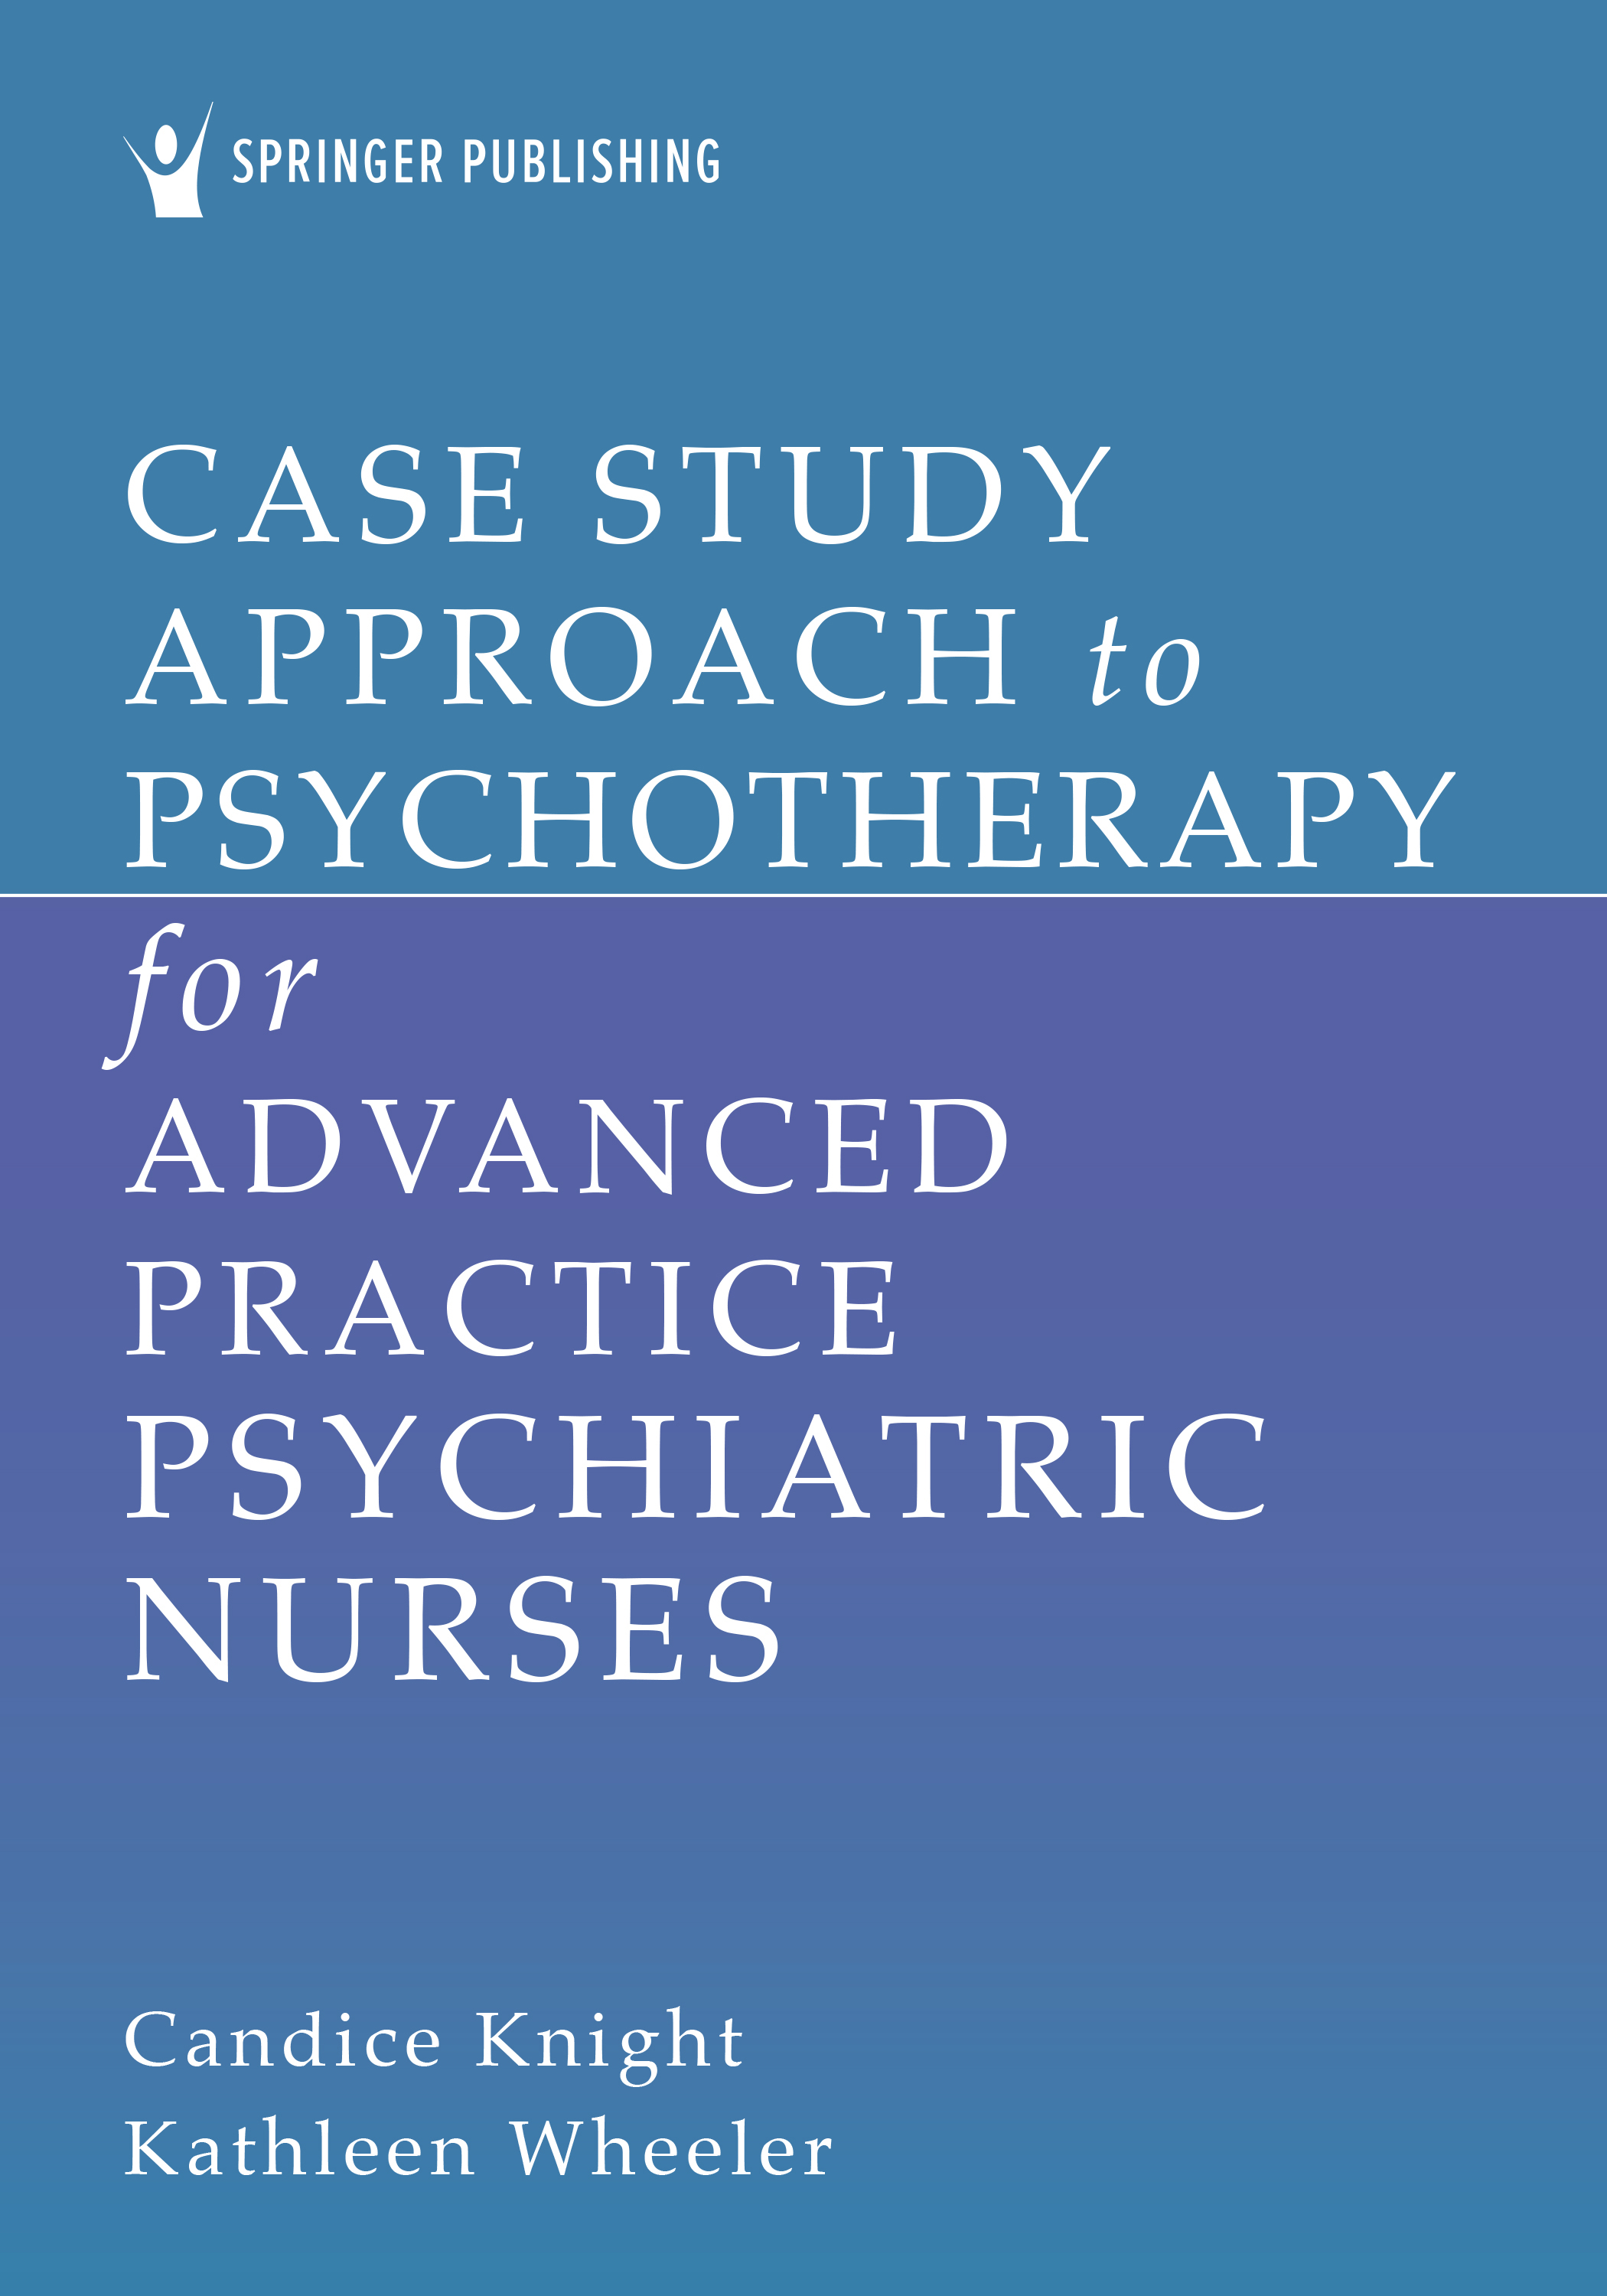 Case Study Approach to Psychotherapy for Advanced Practice Psychiatric Nurses